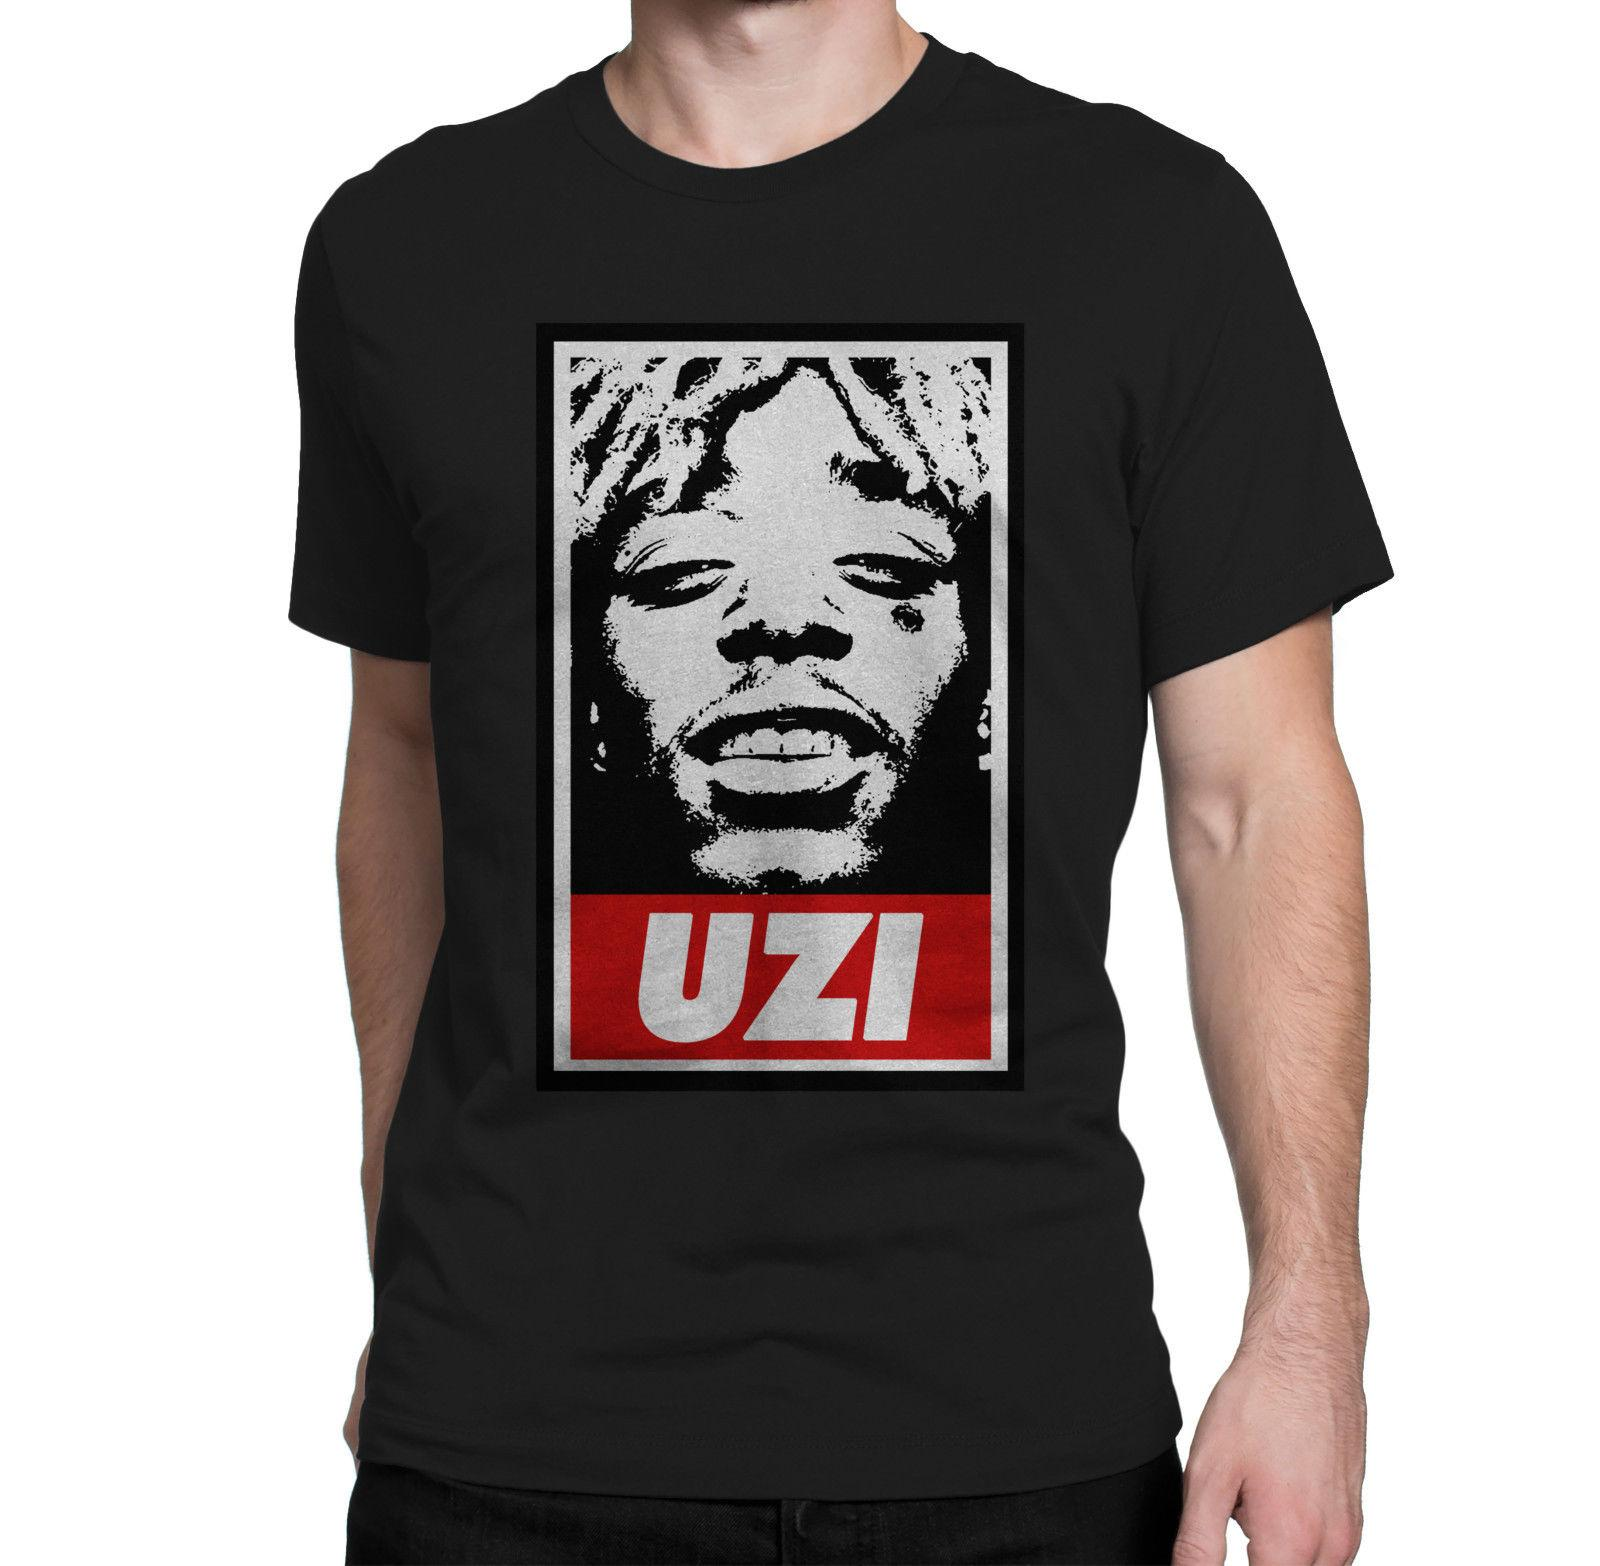 4fcf5d76 100% Cotton Casual Lil Uzi Vert Obey NEW TEE SHIRT SIZE Funny Brand T Shirt  Men 2018 New Fashion Printed Fashionable Round T Shirts Deals Super Cool T  ...